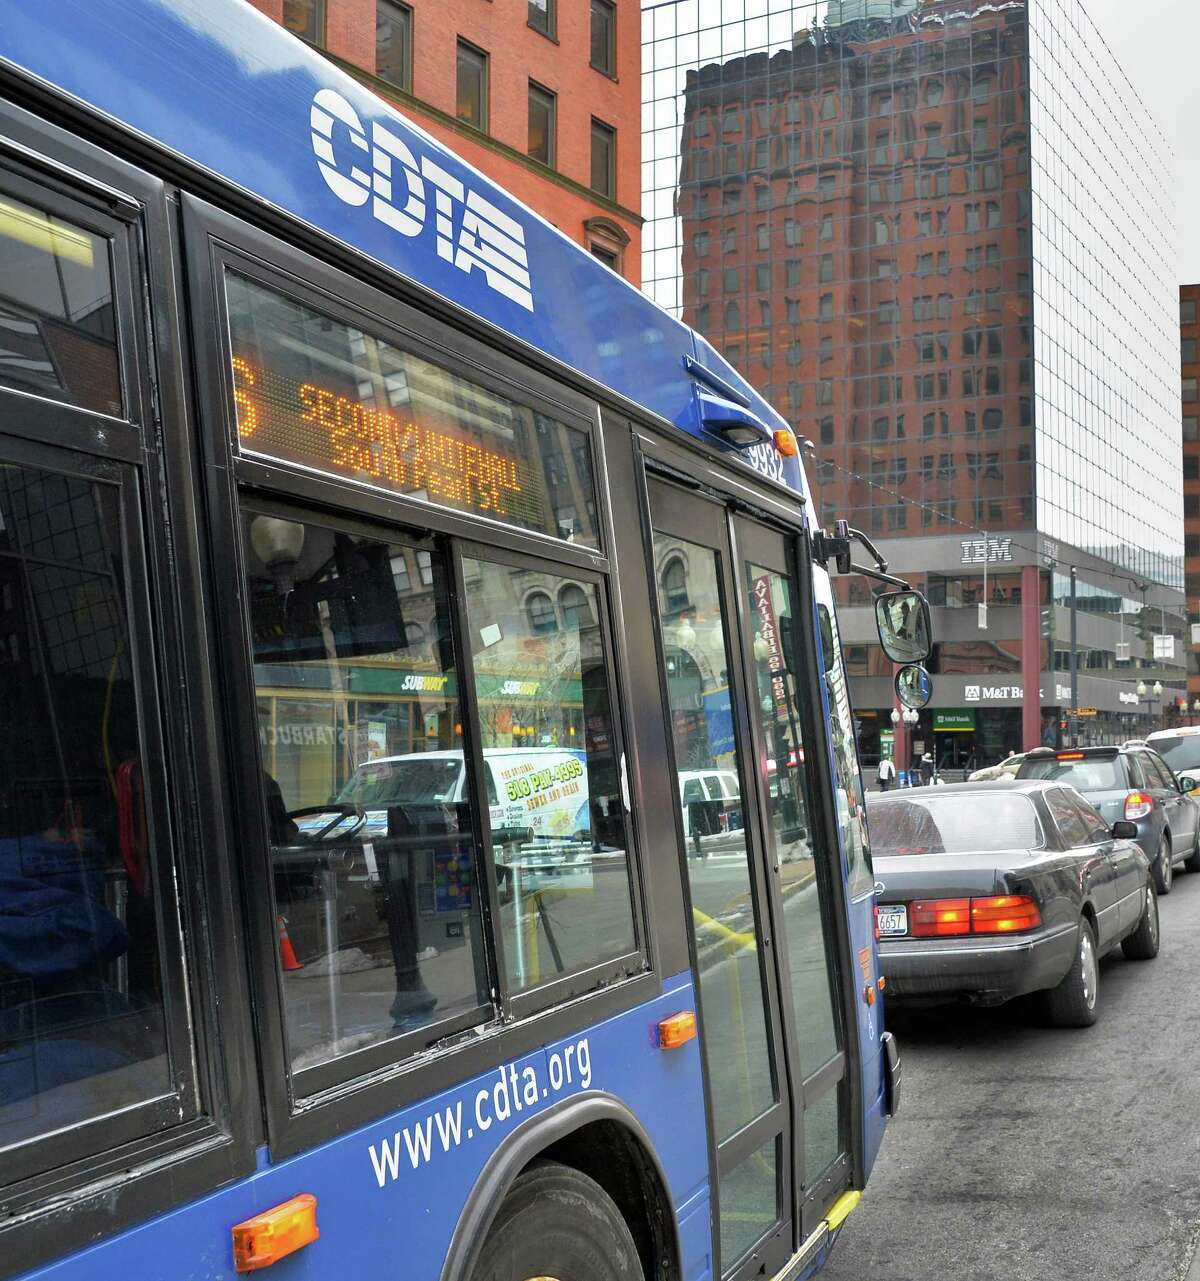 A CDTA bus on North Pearl Street Wednesday, March 5, 2014, in Albany, NY. (John Carl D'Annibale / Times Union archive)